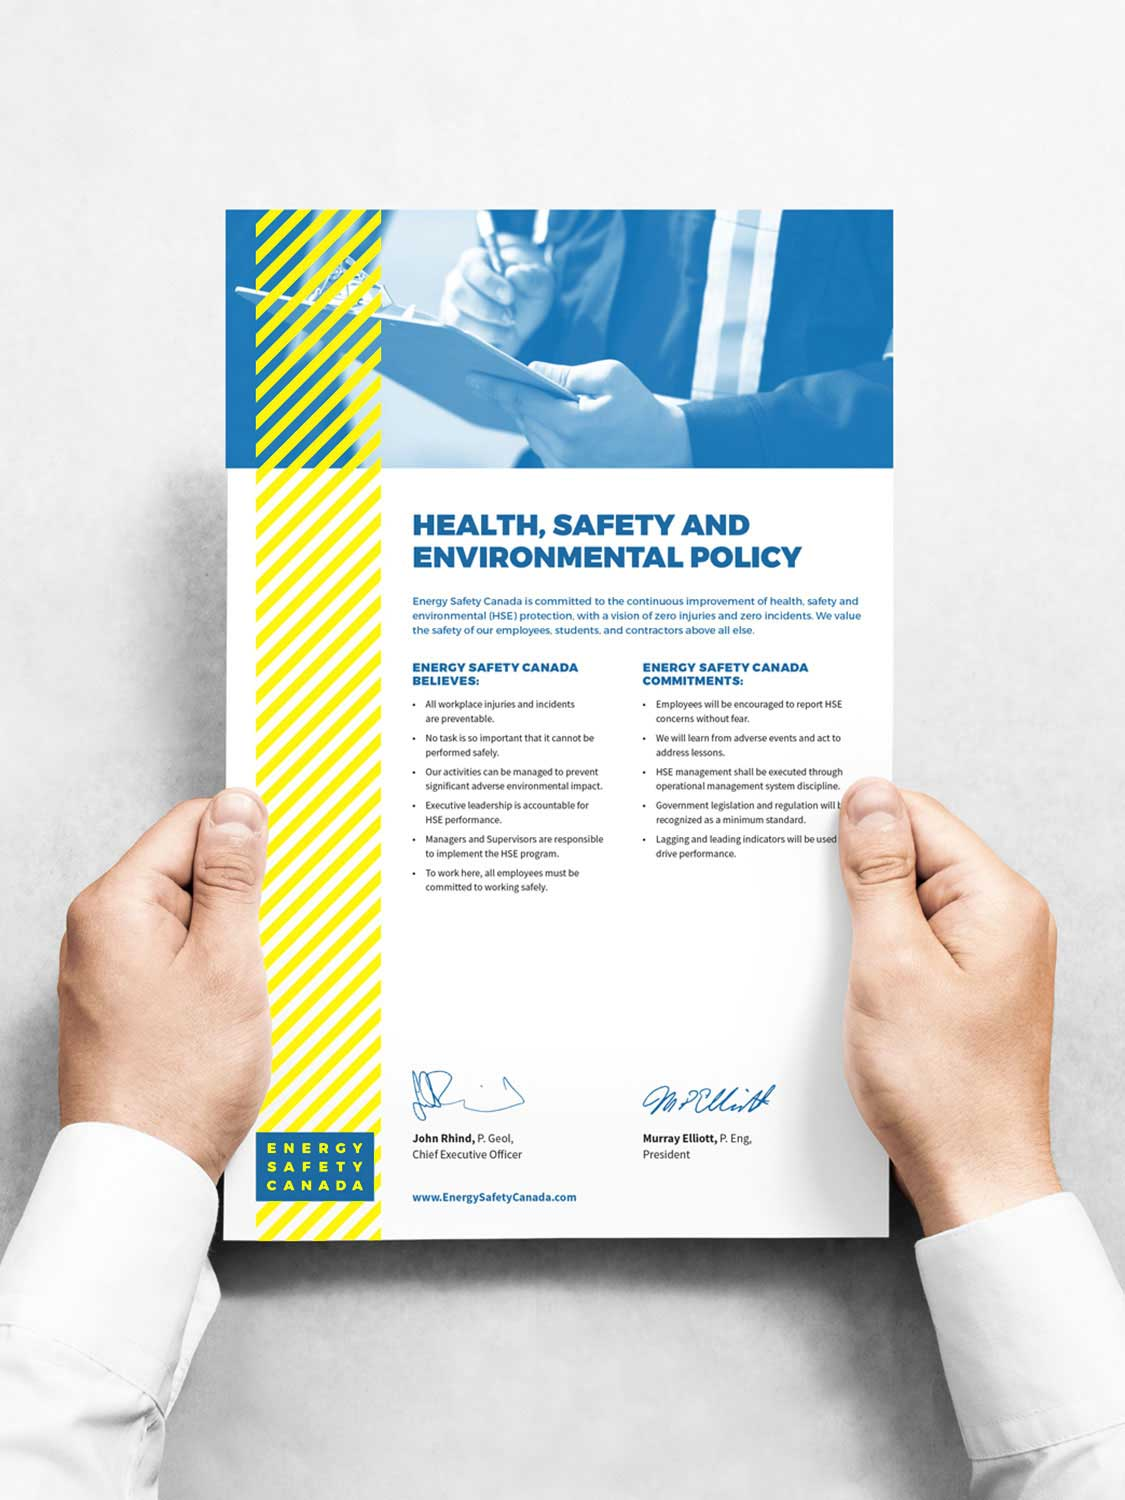 Health, Safety and Environmental Policy document design by Studio Forum for Energy Safety Canada after the merge of Enform and the Oil Sands Safety Association